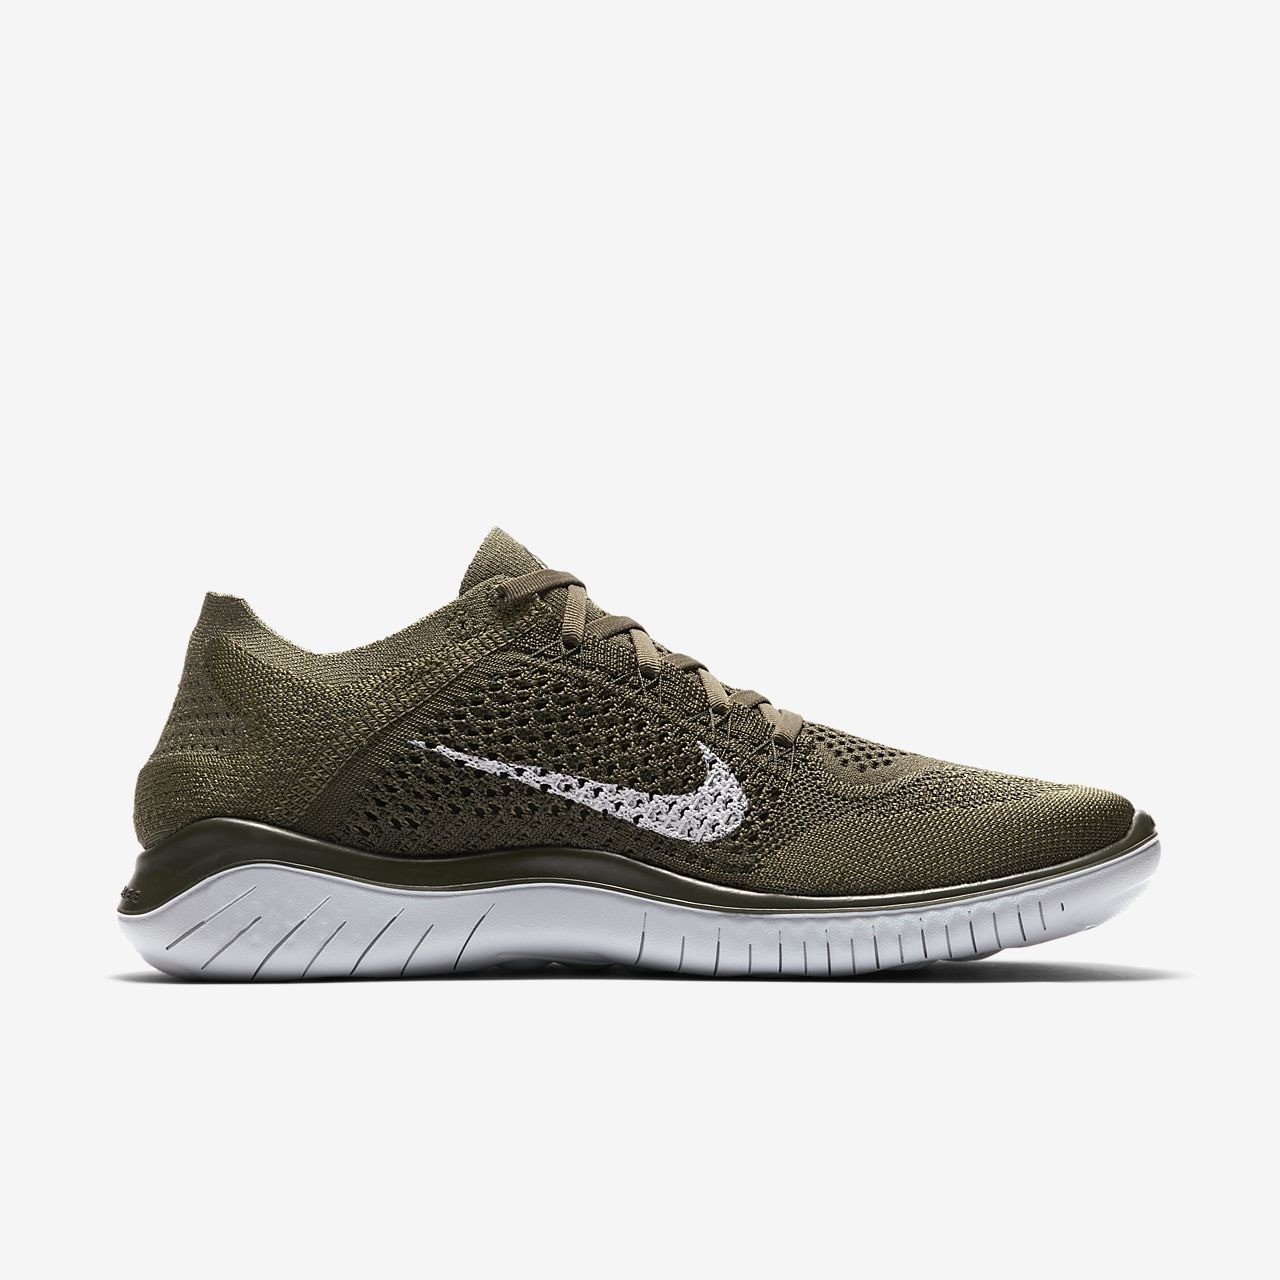 Marques Chaussure homme Nike homme Nike Free Rn 2018 Cargo Khaki/Black-Sequoia